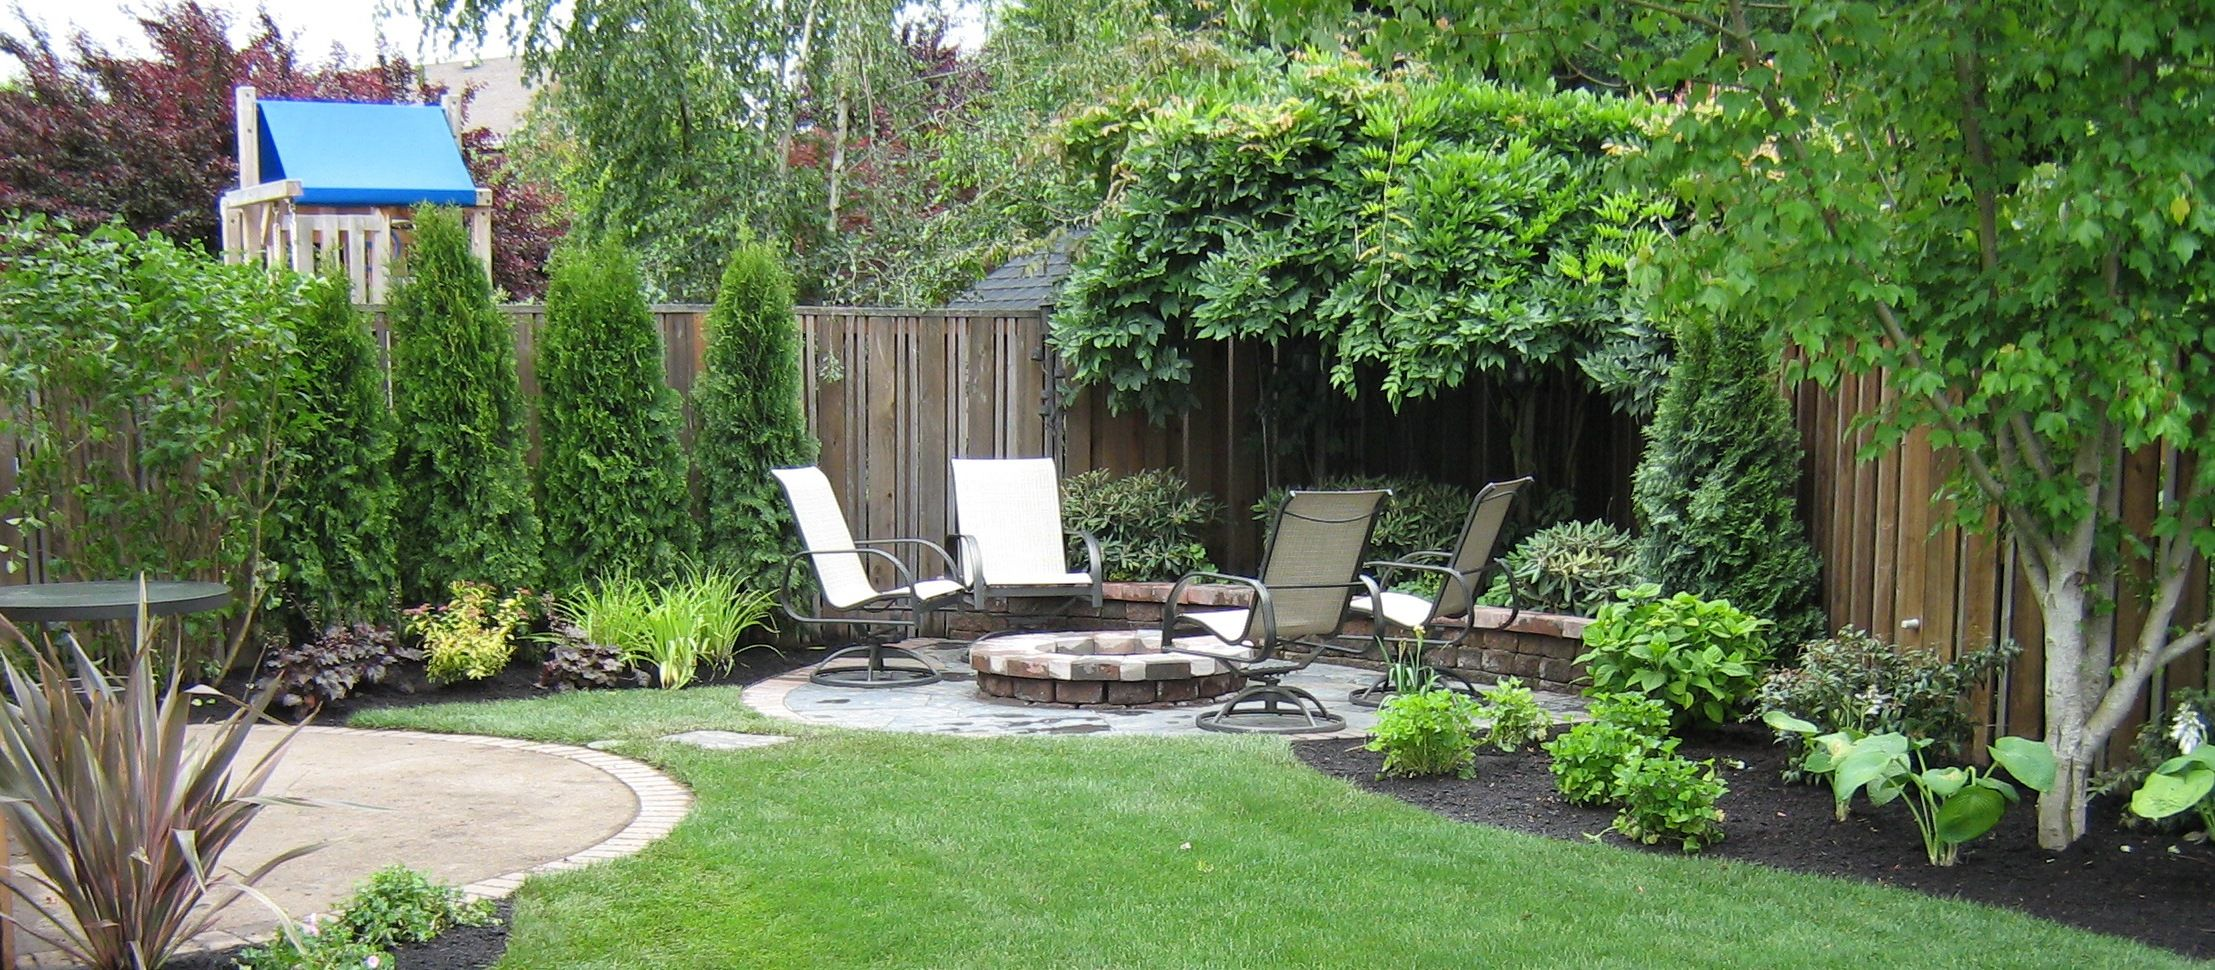 Small backyard landscaping ideas photos garden design for Beautiful landscape design